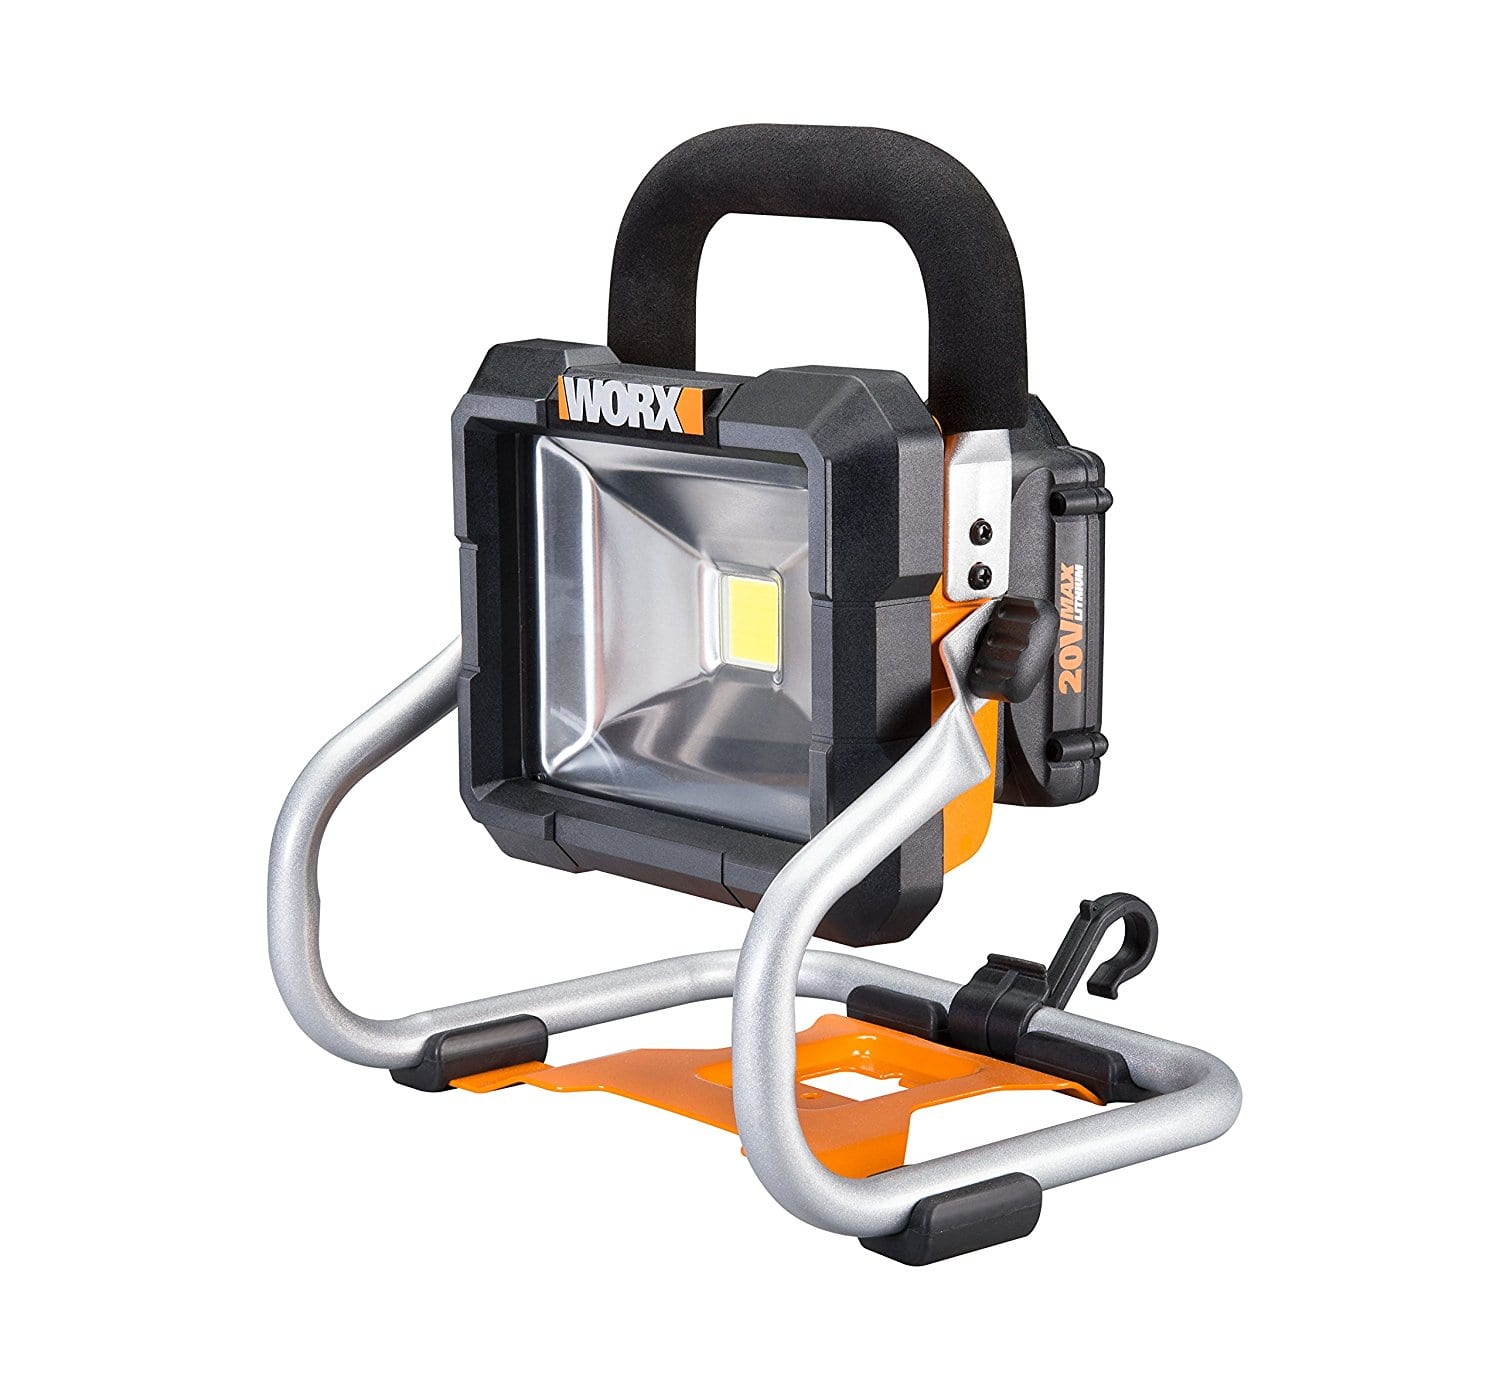 Worx Cordless 20V Max Lithium LED Work Light $32 - tool only no battery